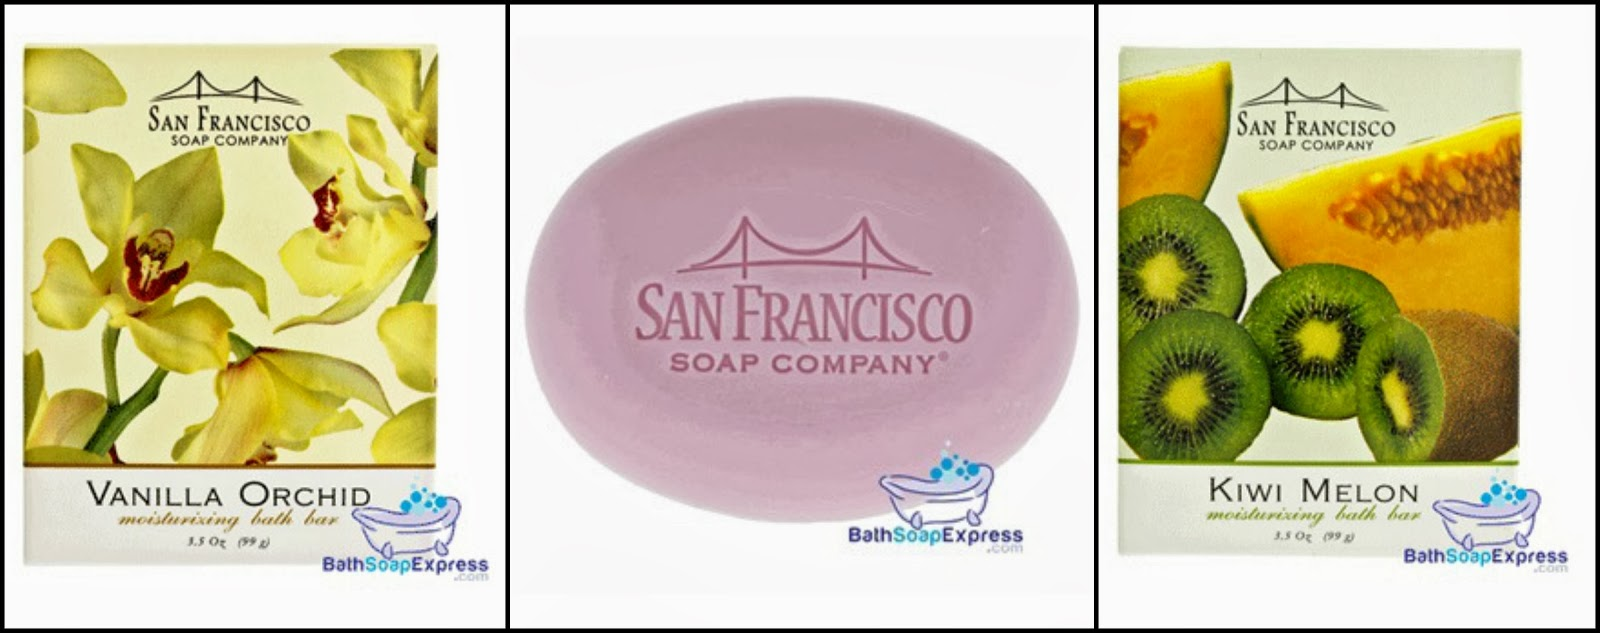 San Francisco Soap Company